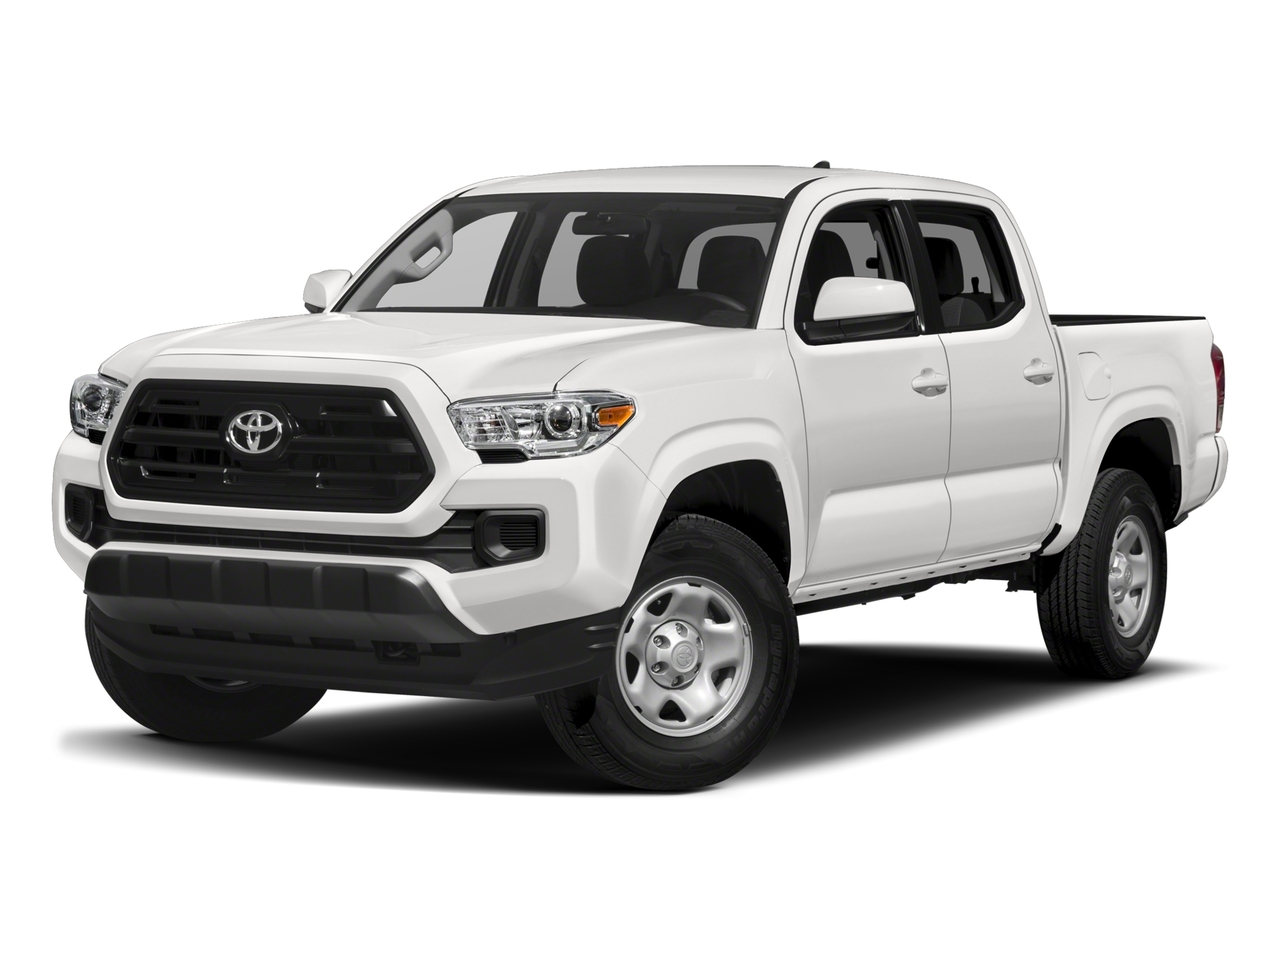 Toyota Truck Lineup   Krause Toyota Serving The Lehigh Valley